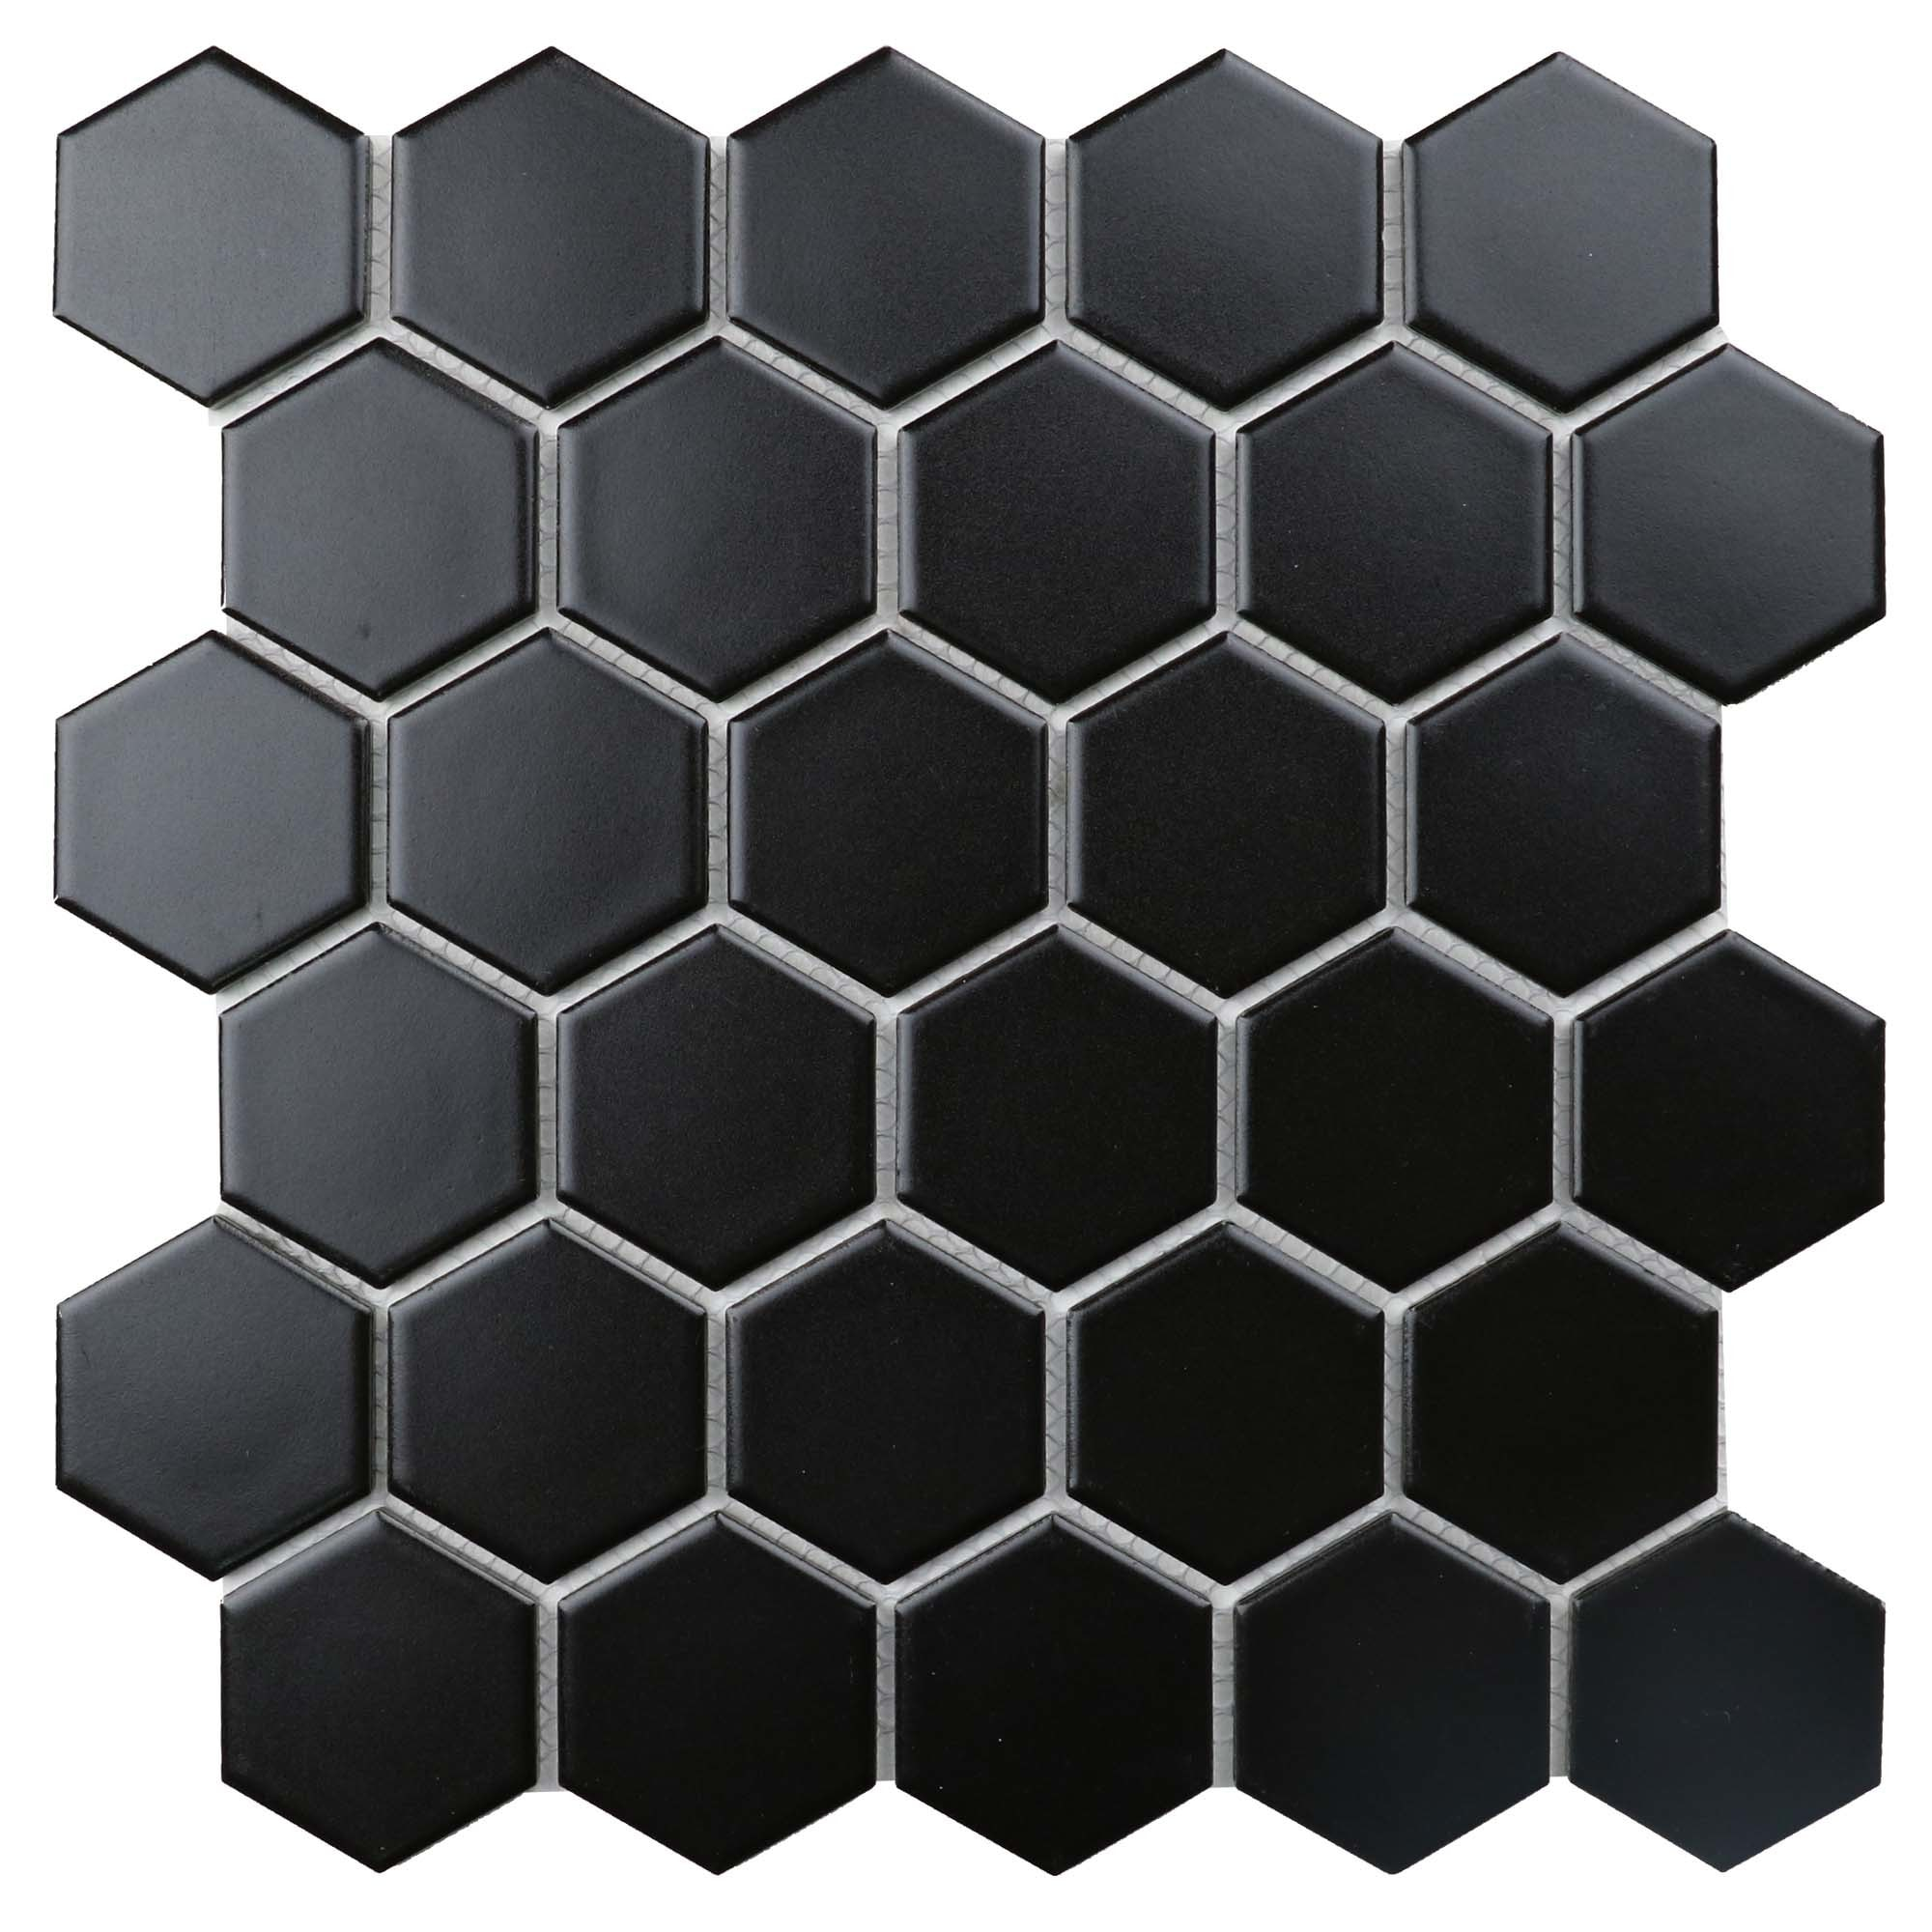 """11 x 10.5 x 0.24 inches / Matte Retro 2"""" Hexagon Porcelain Matte Floor and Wall Tile in Black 0"""